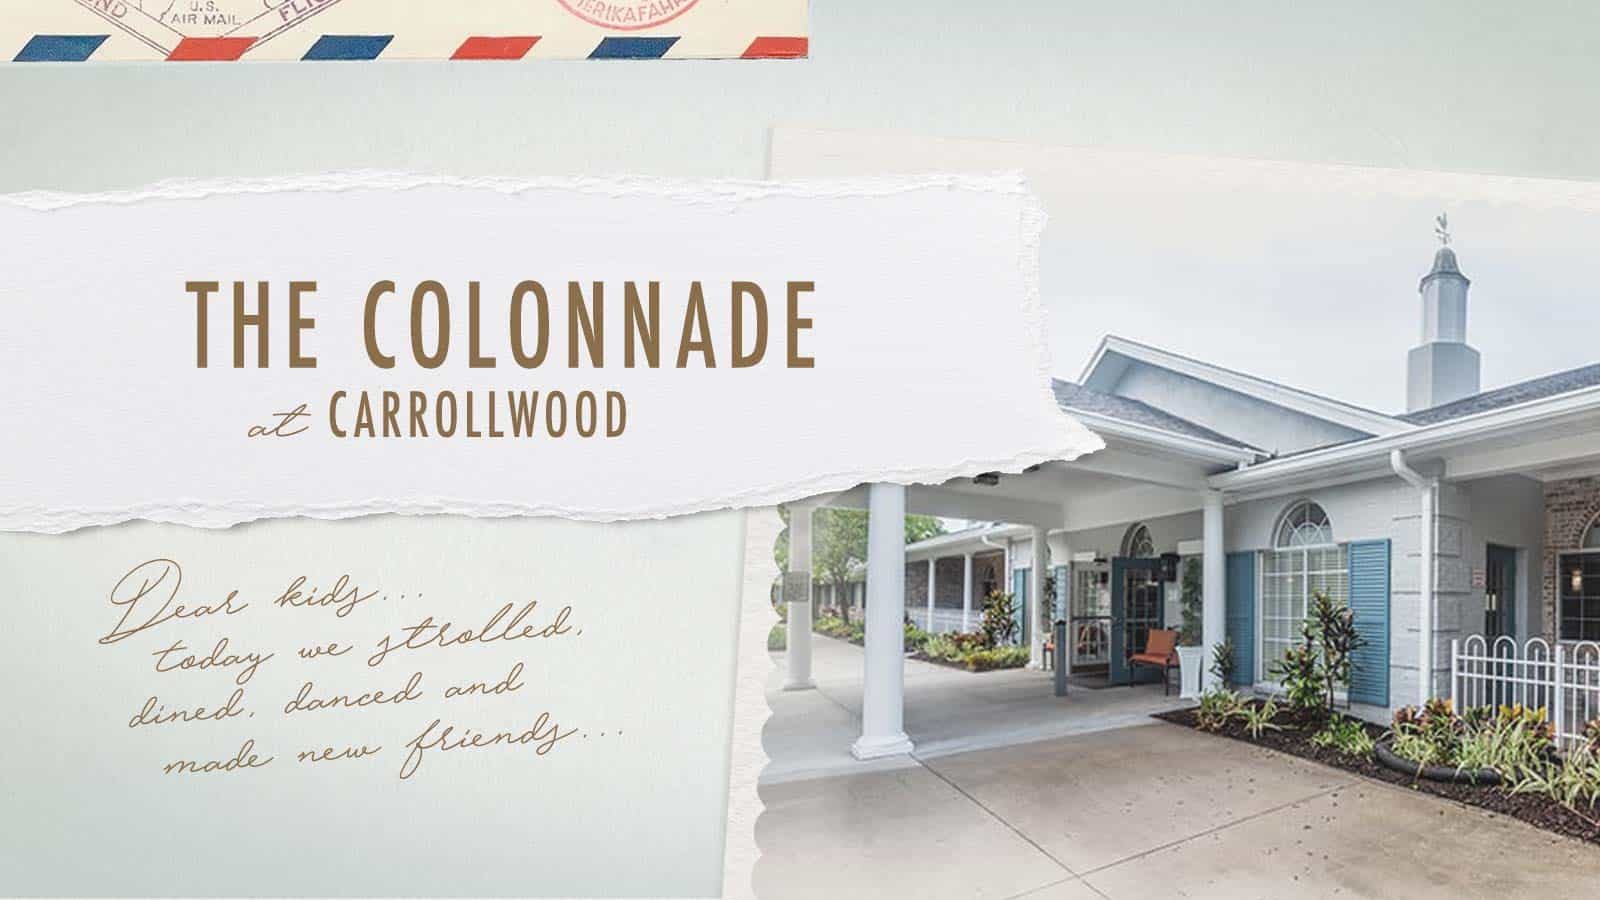 The Colonnade at Carrollwood